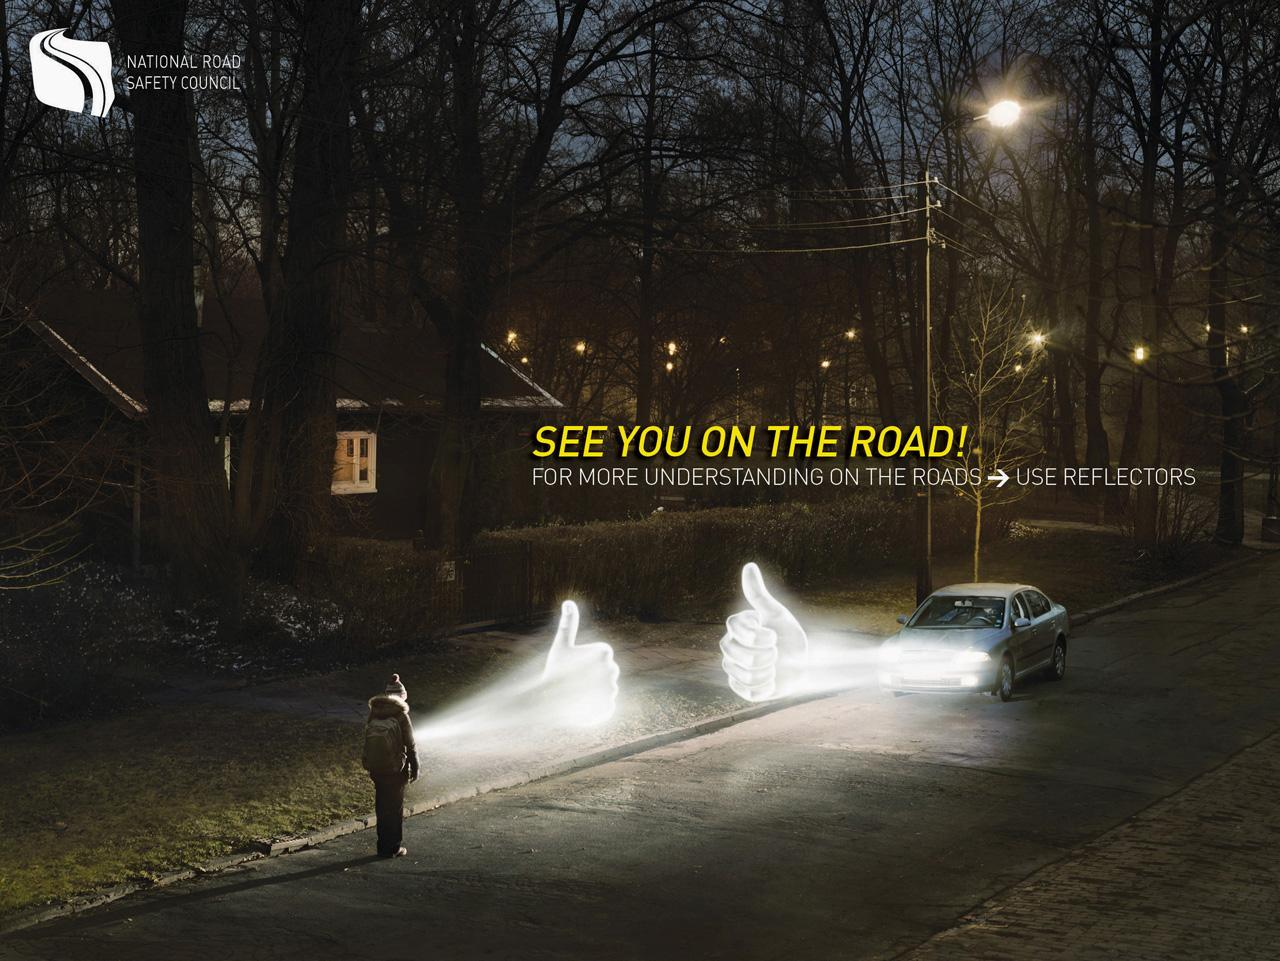 The Polish National Road Safety Council Print Ad -  See you on the road, 3